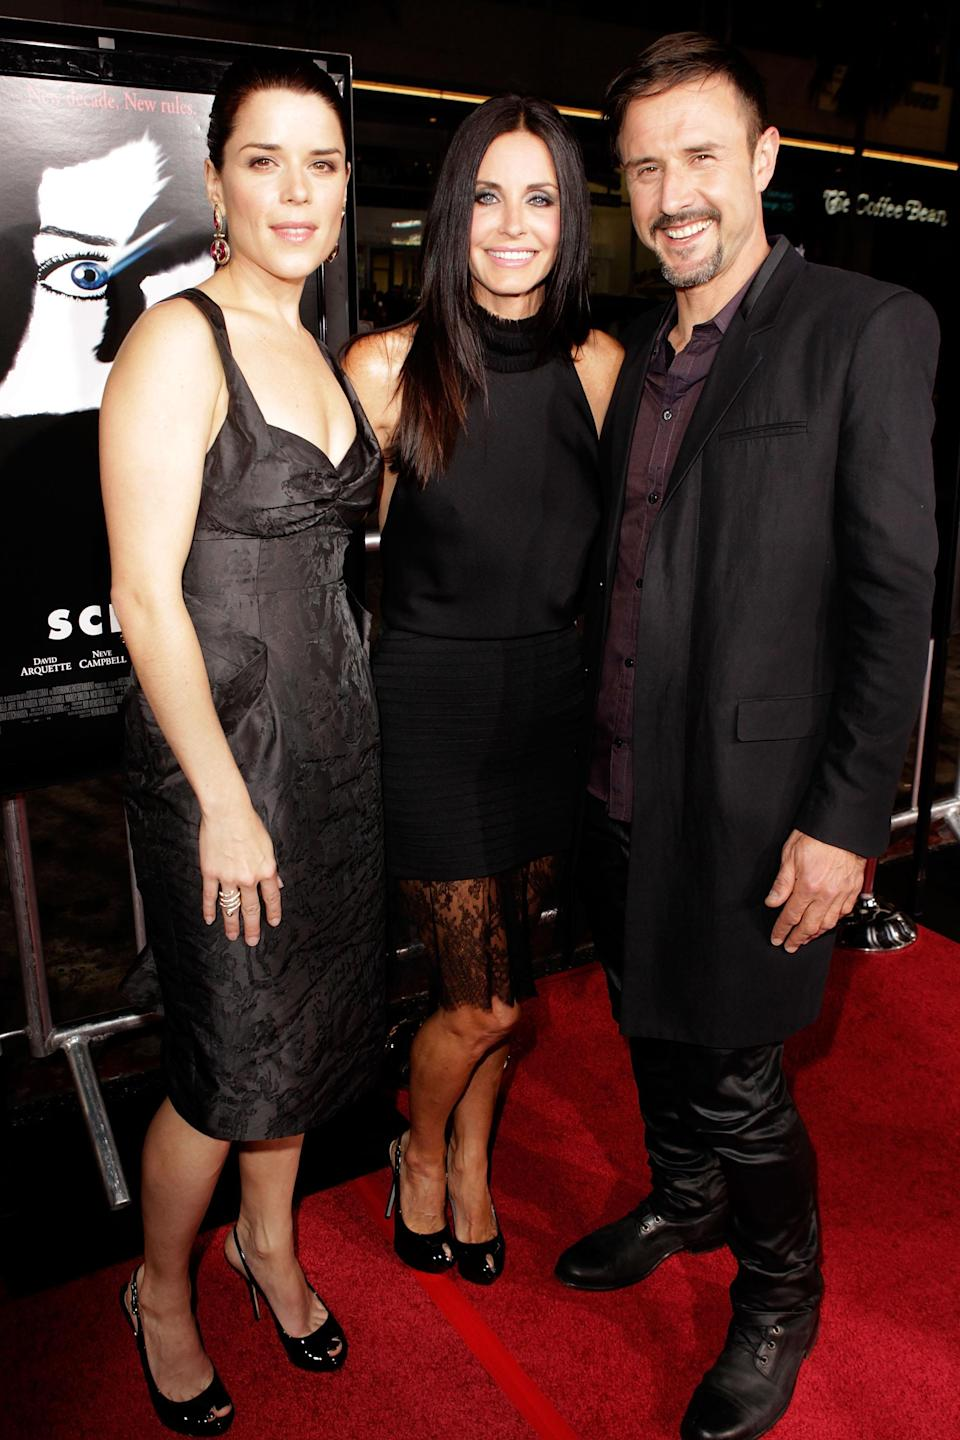 By the premiere of <em>Scream 4</em> in April 2011, David Arquette's marriage to Courteney Cox was over. The pair still posed for photographs, though, like here, with co-star Neve Campbell. (Photo: John Shearer/WireImage)